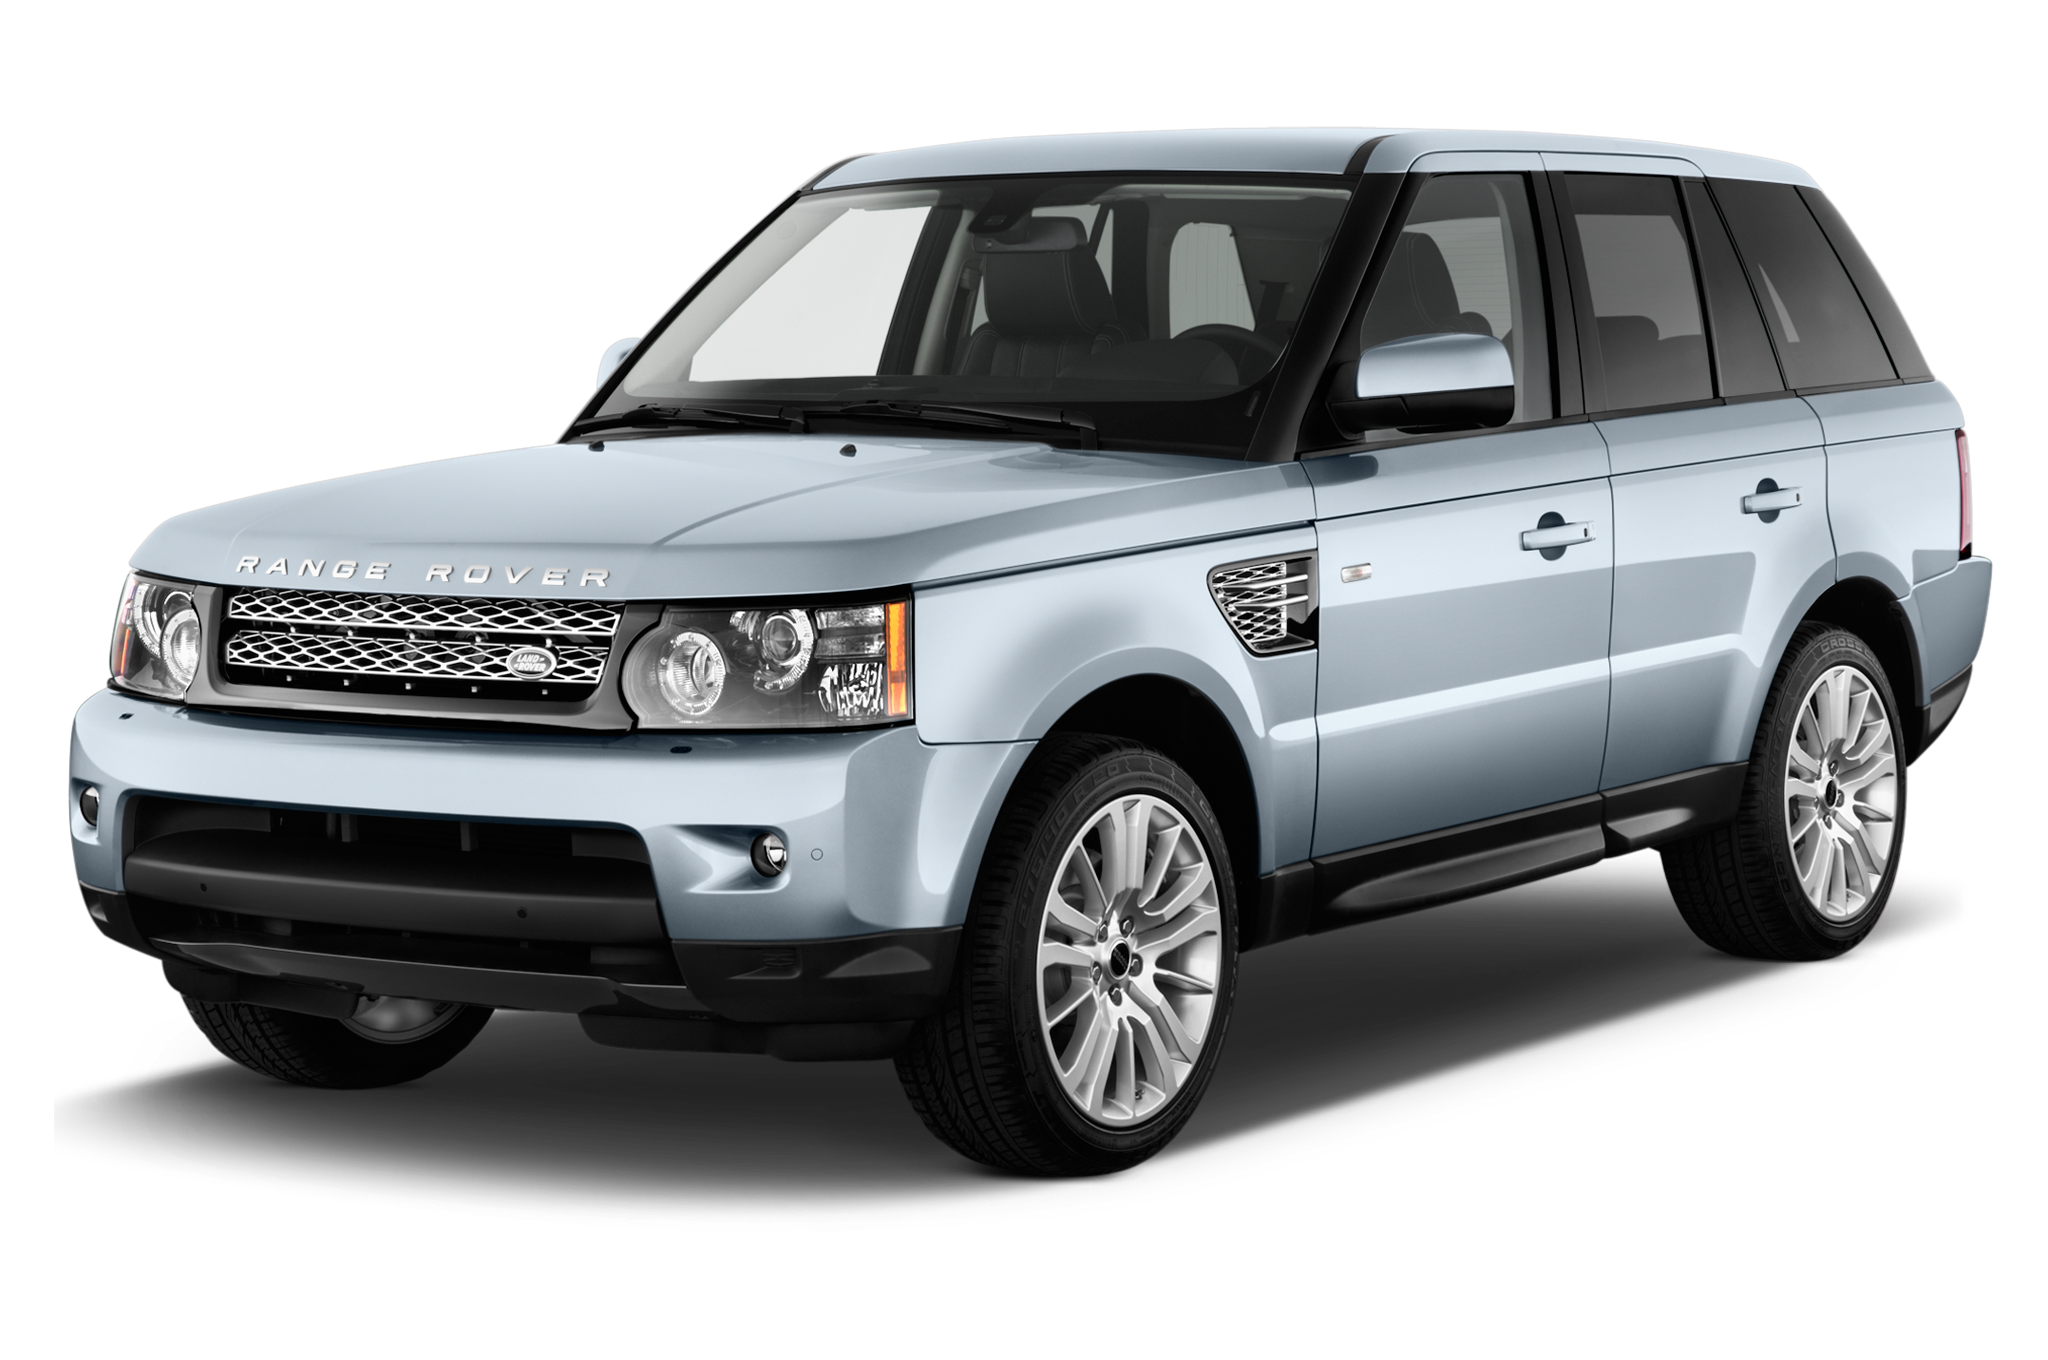 2012 land rover range rover sport hse suv angular front. Black Bedroom Furniture Sets. Home Design Ideas